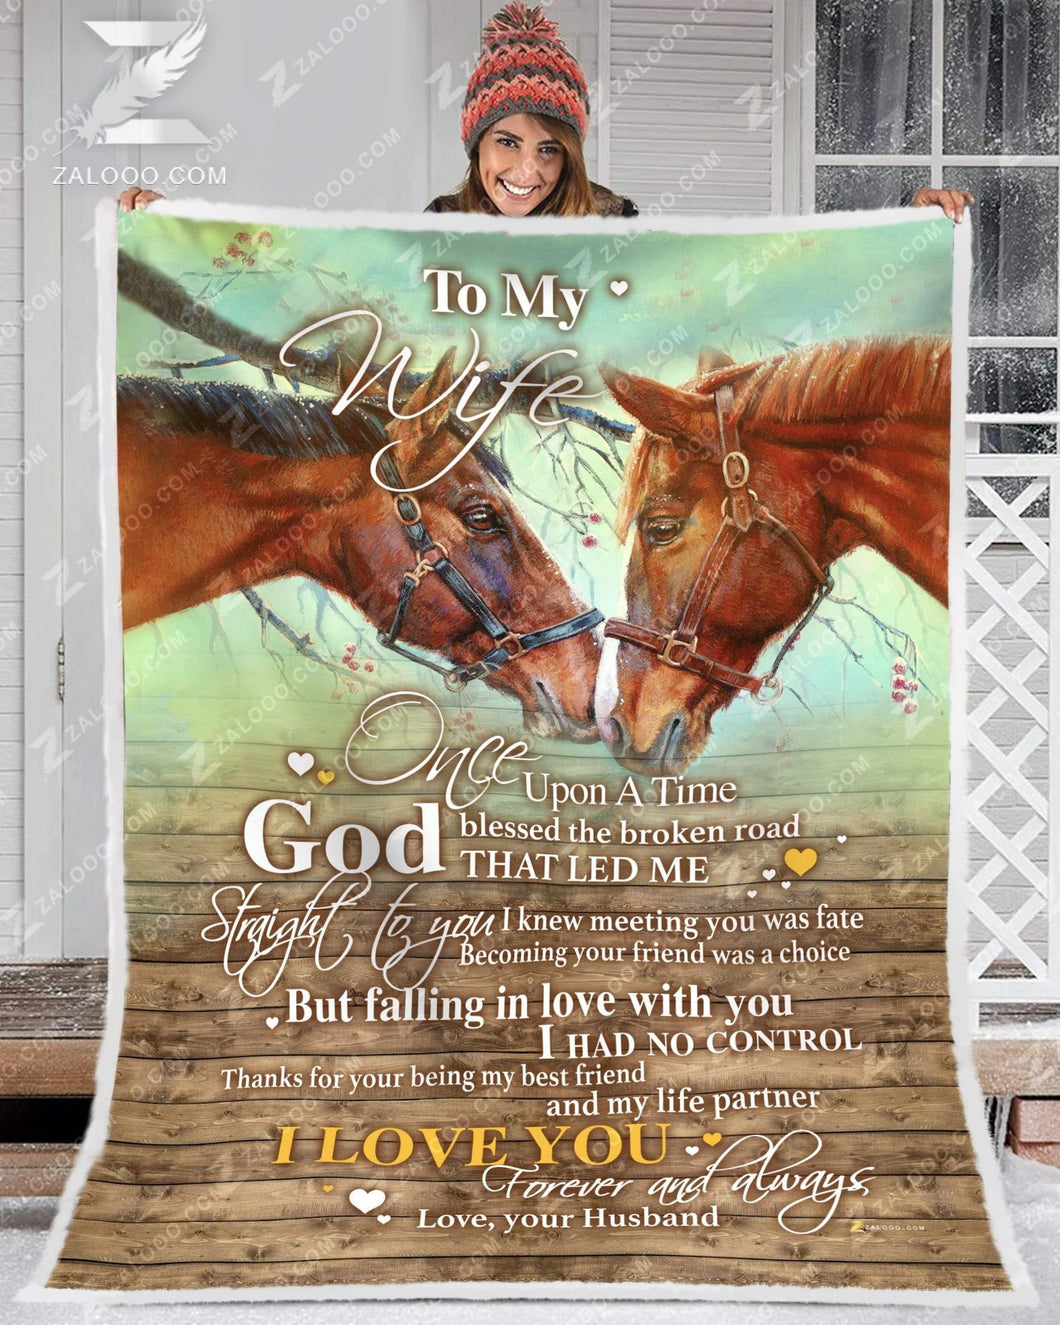 BLANKET HORSE To my Wife God Blessed The Broken Road - Zalooo.com Custom Wall Art Canvas